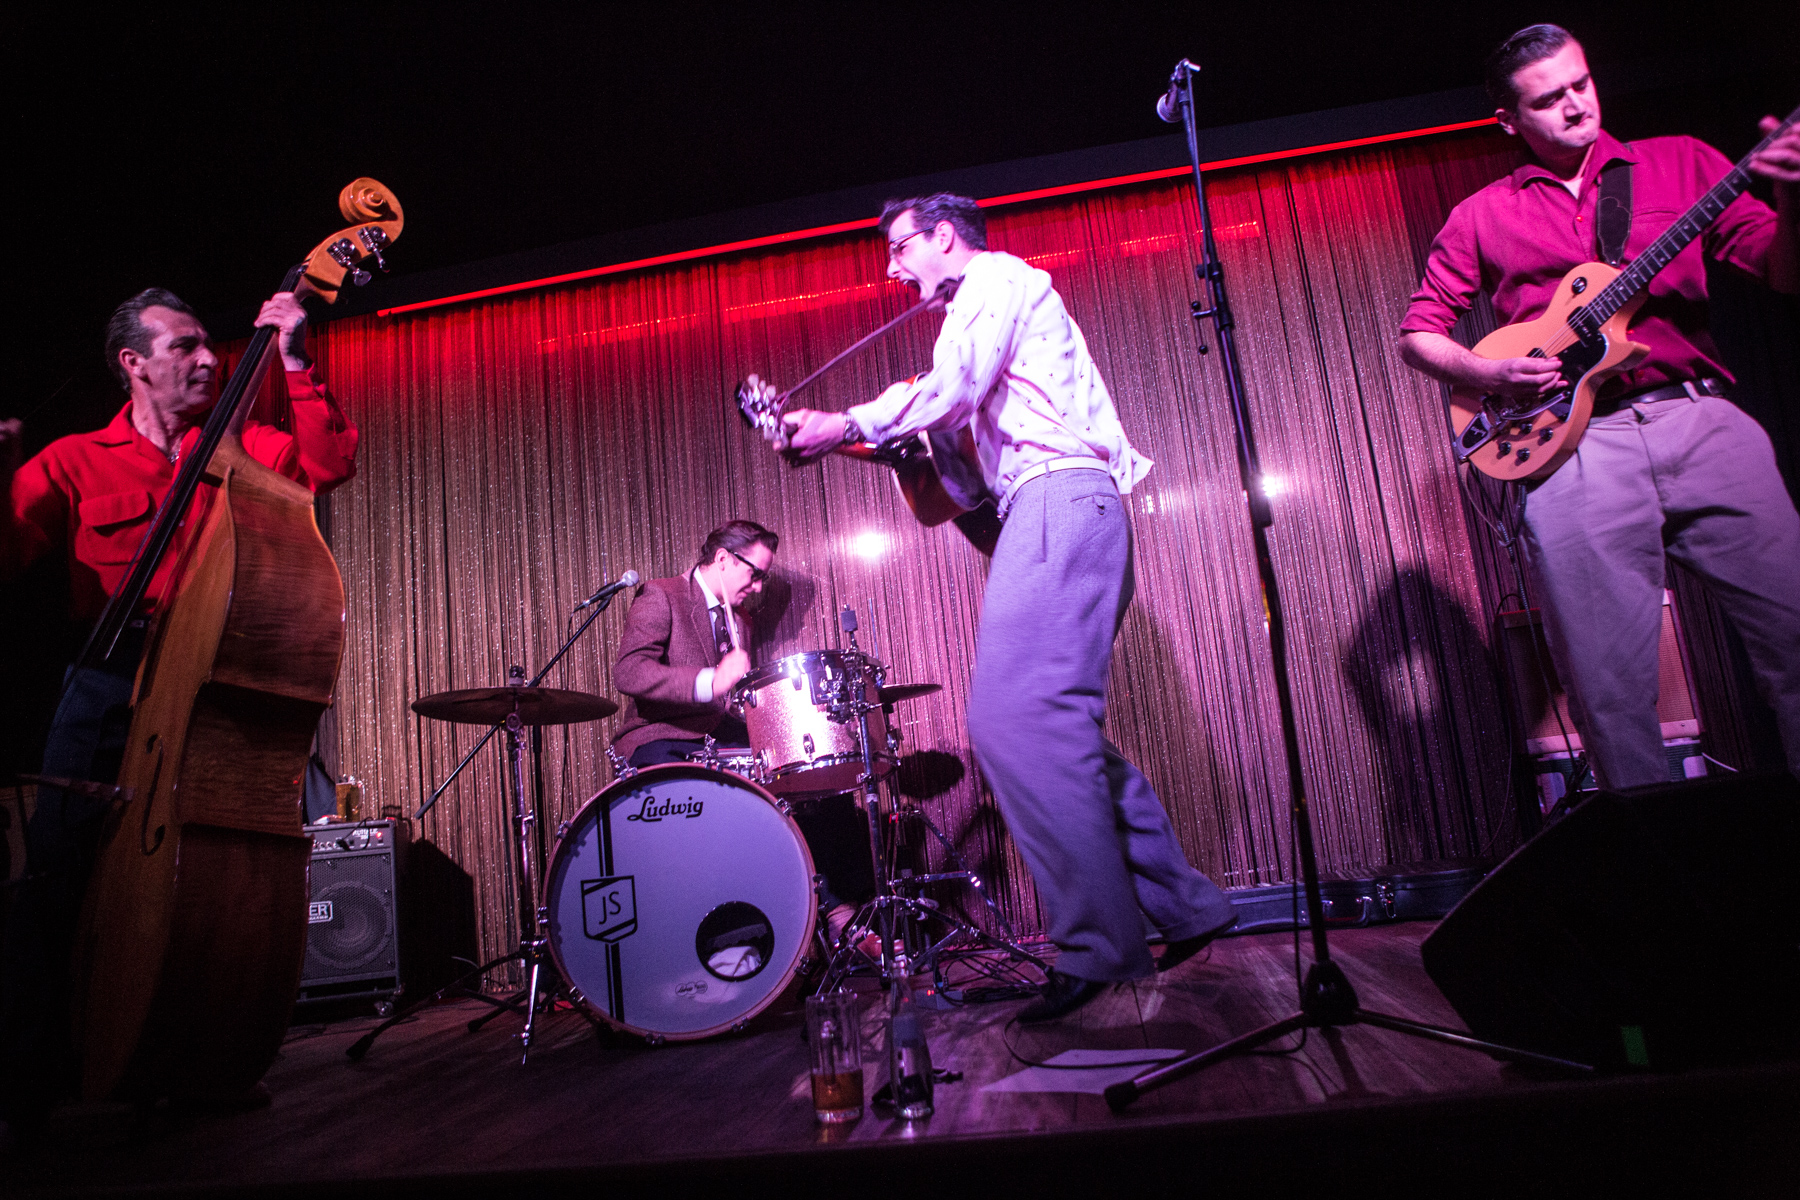 A band is playing at the Orange Peel club in the Kaiserstraße in the Bahnhofsviertel district